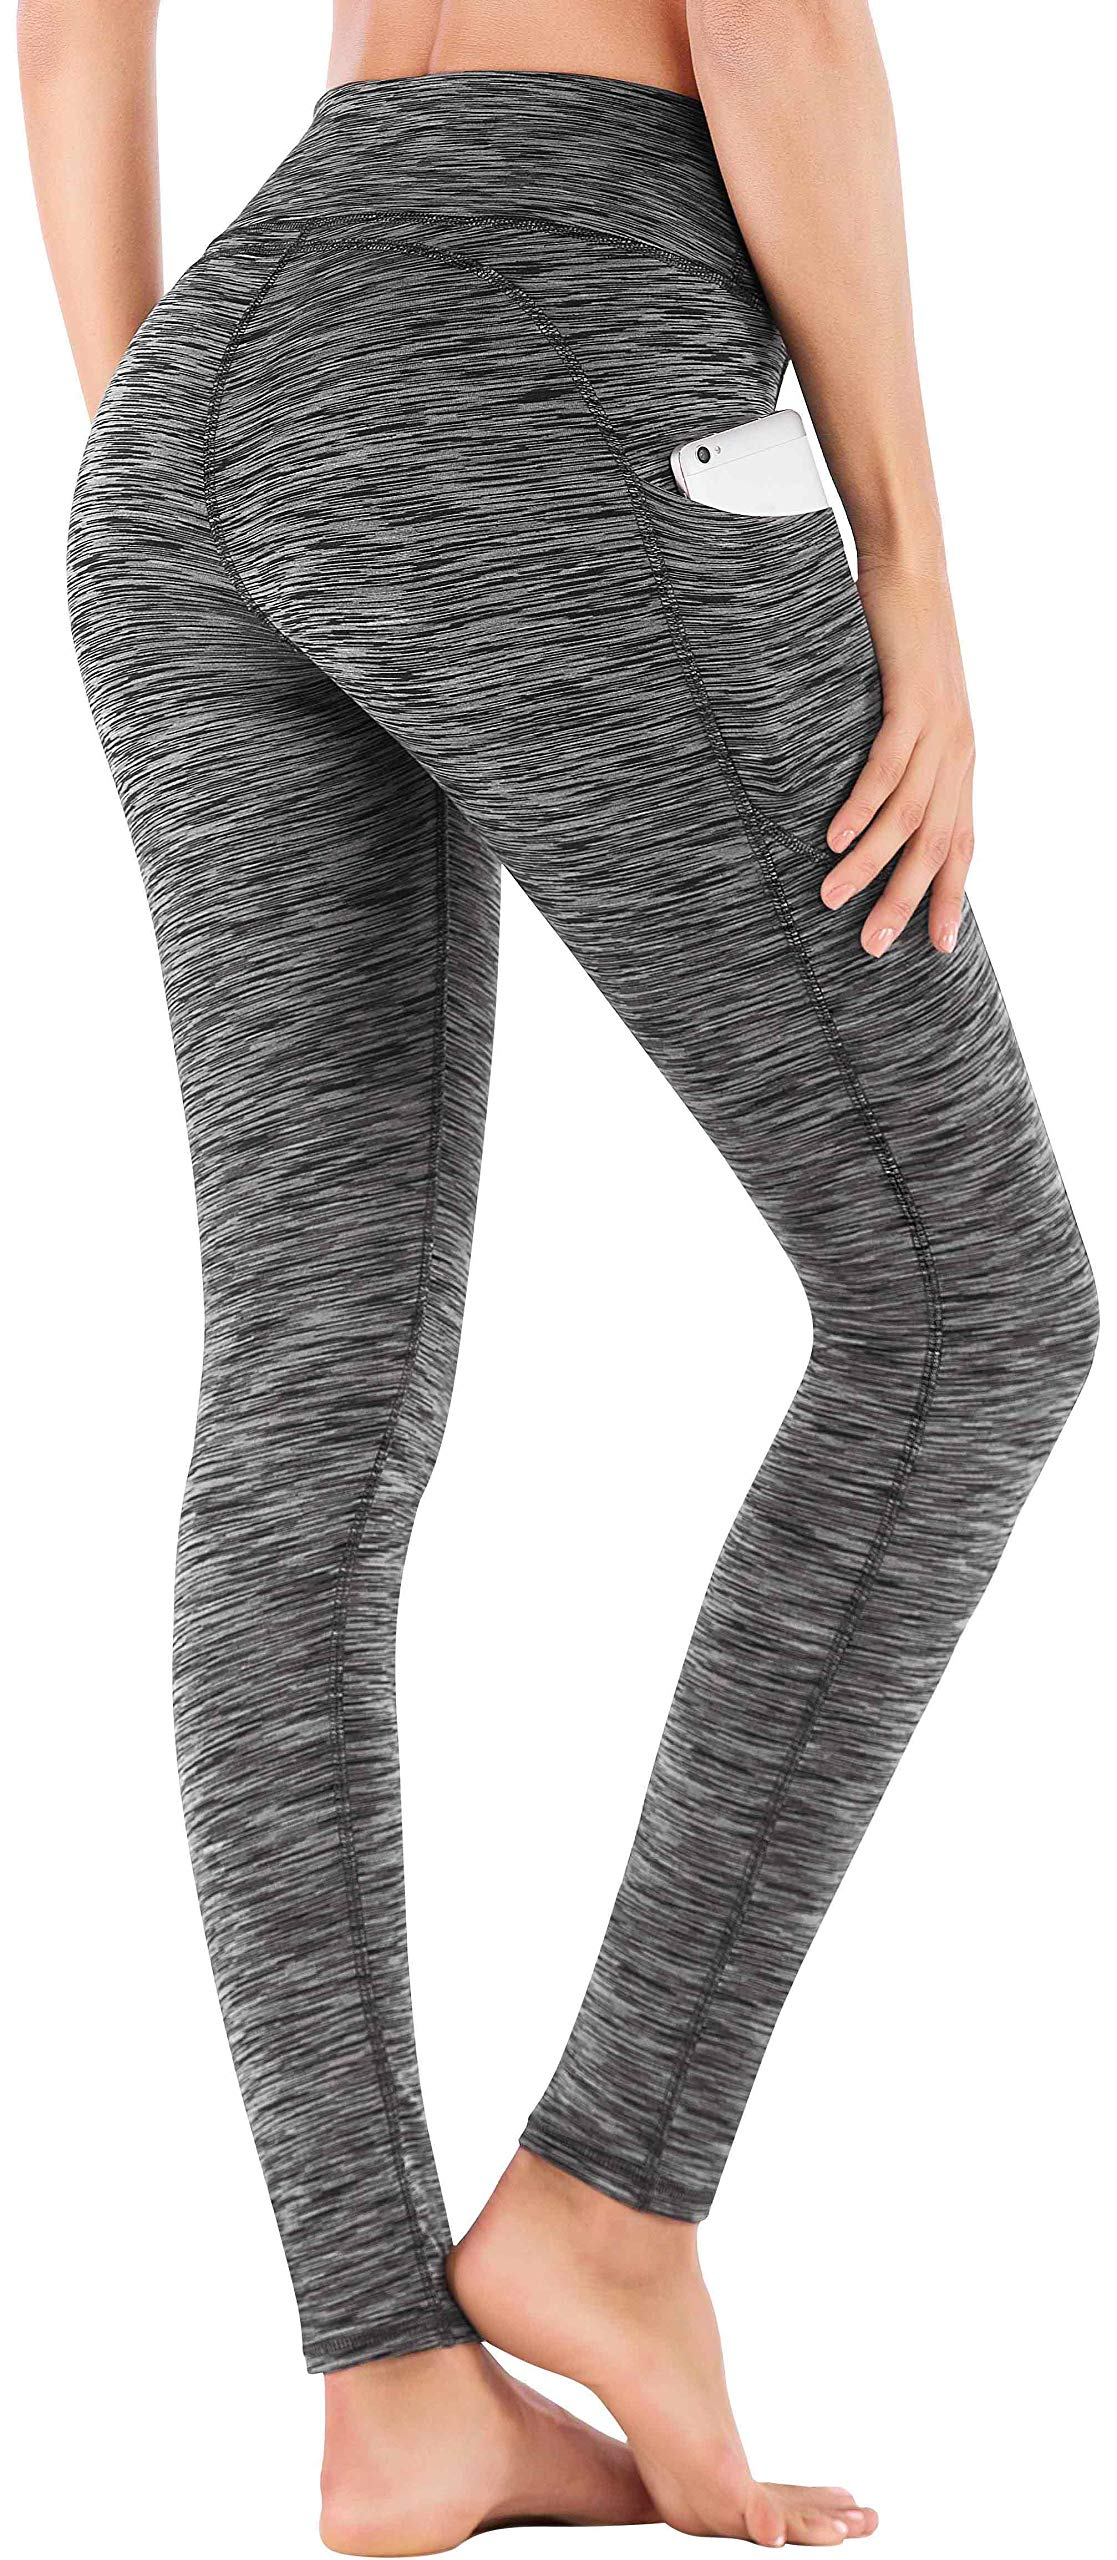 IUGA High Waist Yoga Pants with Pockets, Tummy Control Running Pants for Women, 4 Way Stretch Workout Leggings with Pockets by IUGA